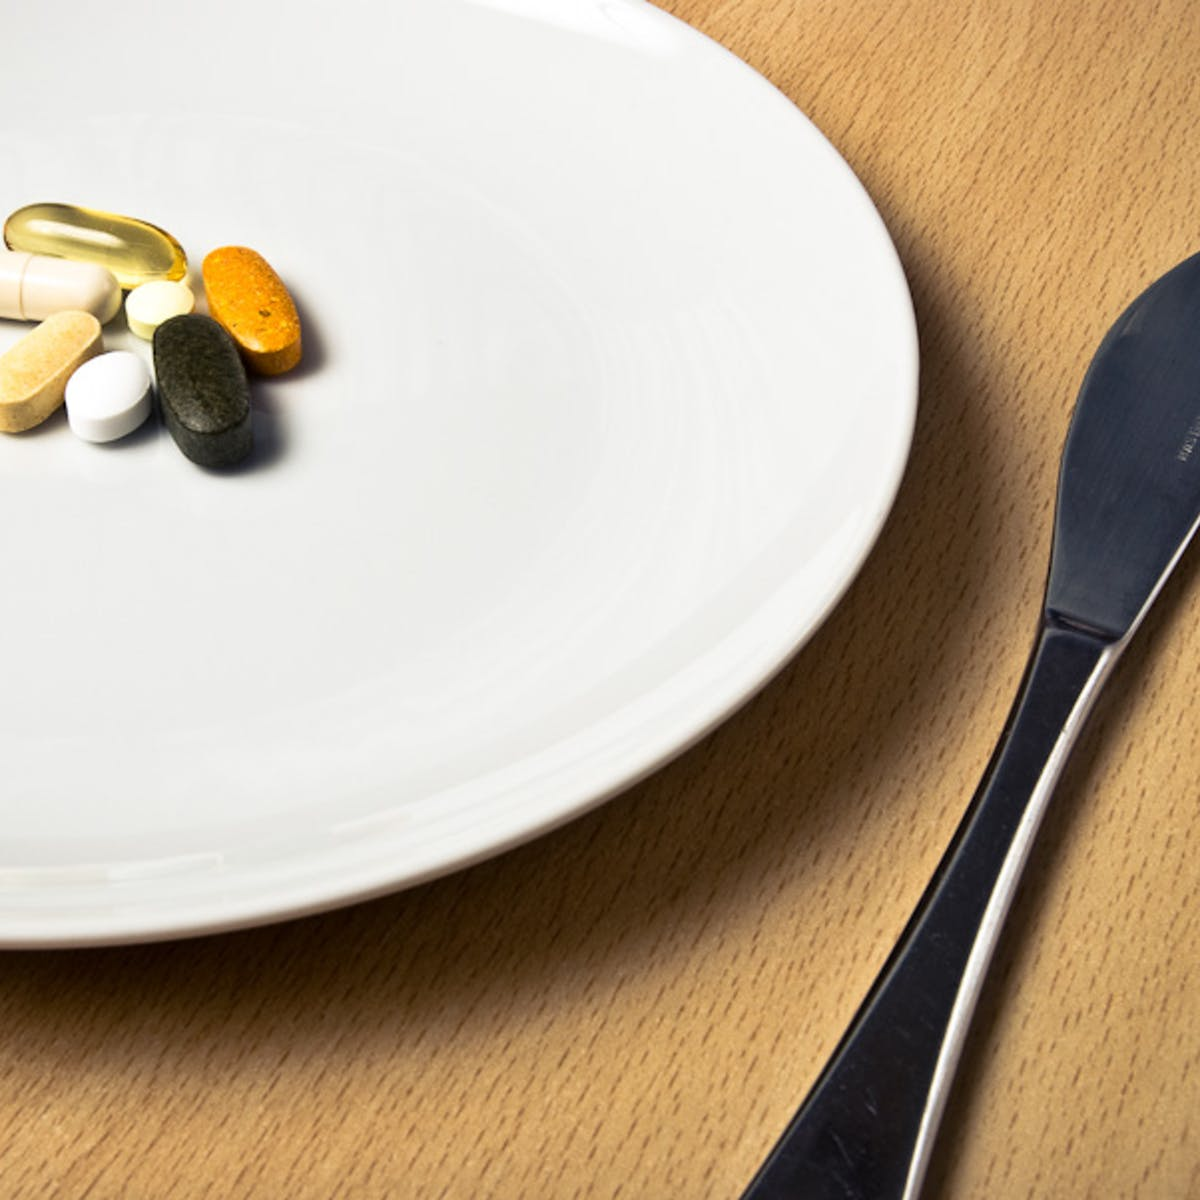 Explainer: why must some medications be taken with food?